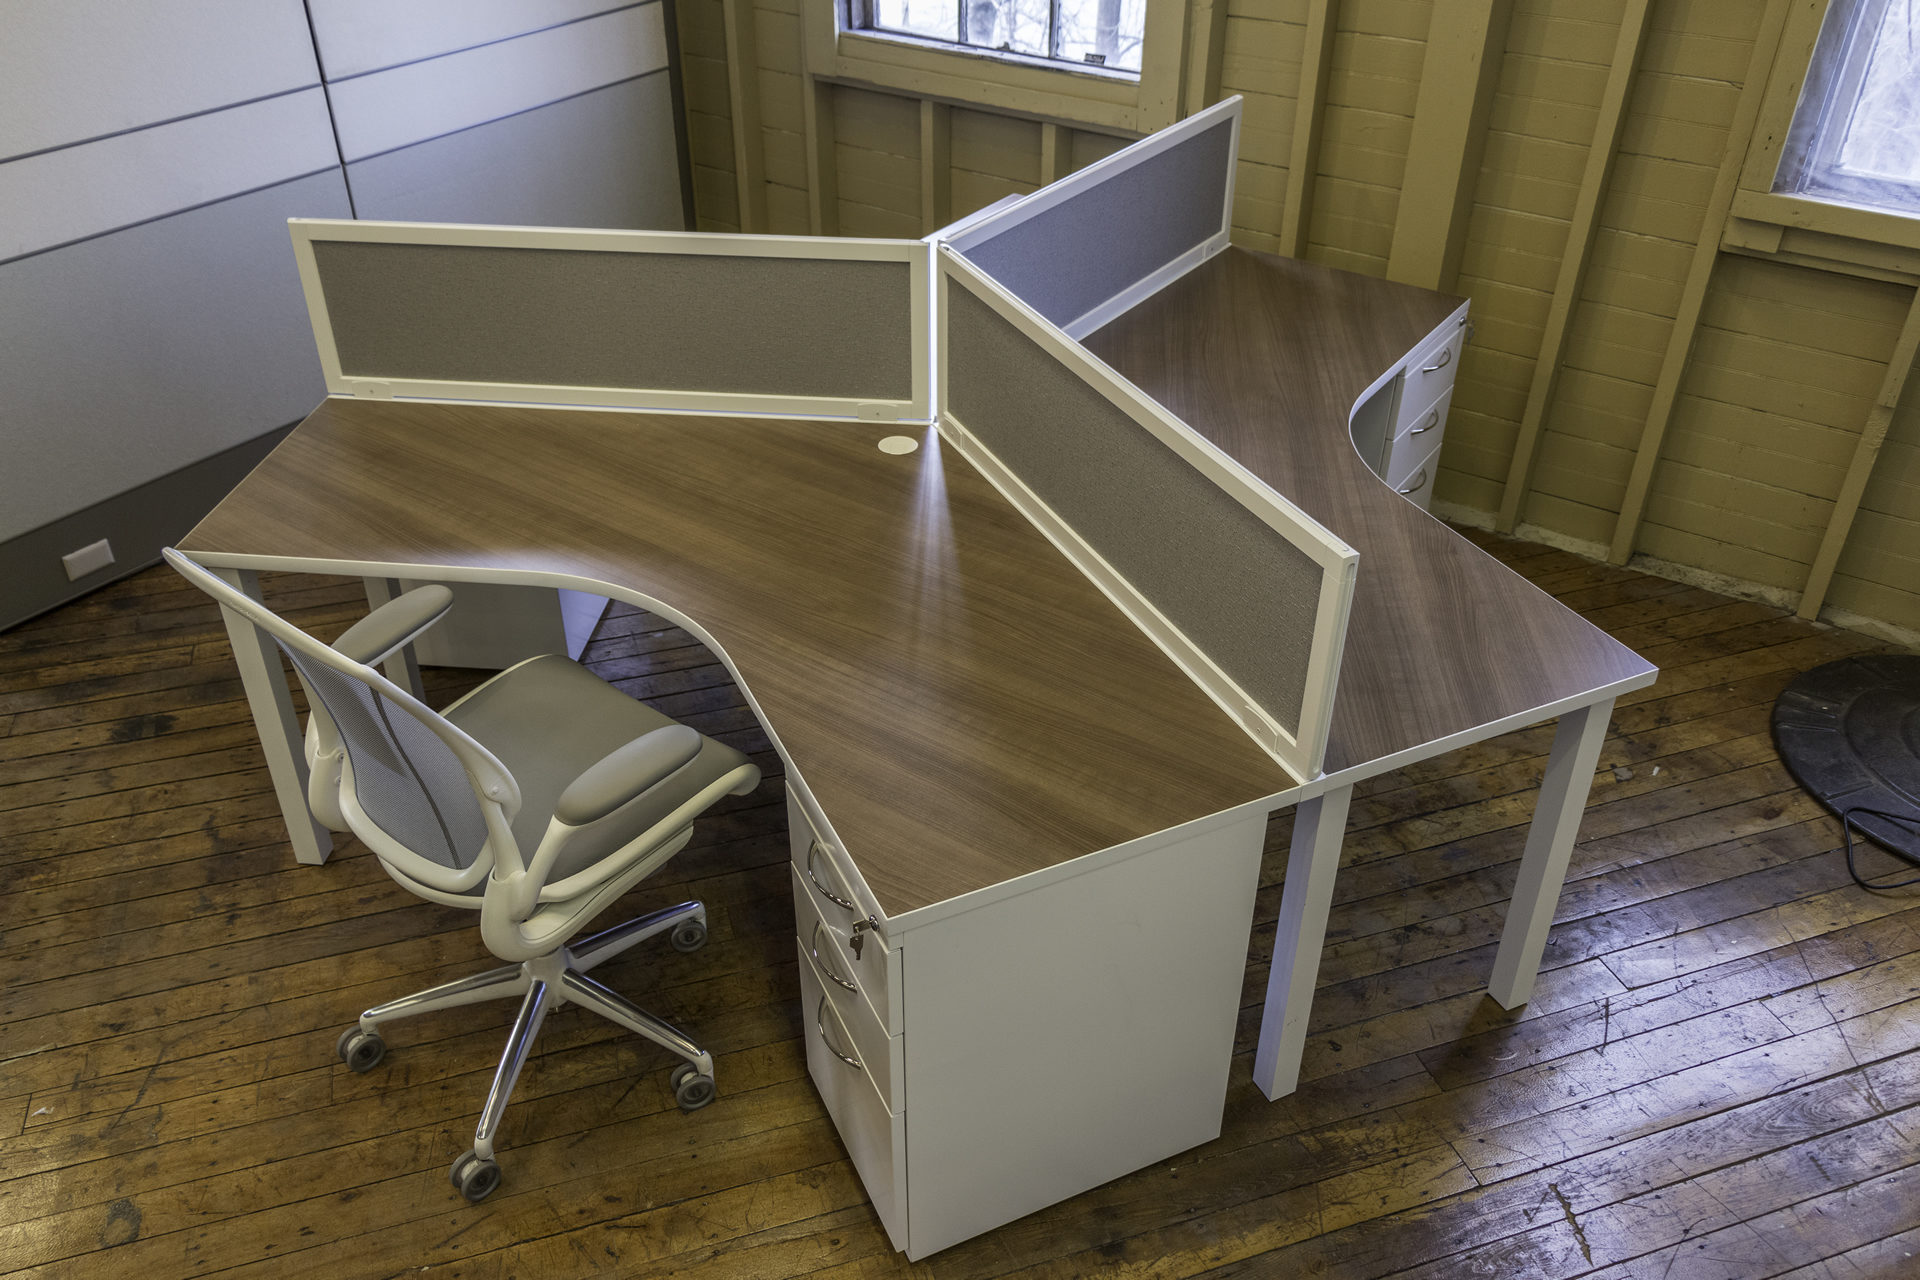 peartreeofficefurniture_peartreeofficefurniture_peartreeofficefurniture_new-peartree-custom-3-pod-workstations-2.jpg